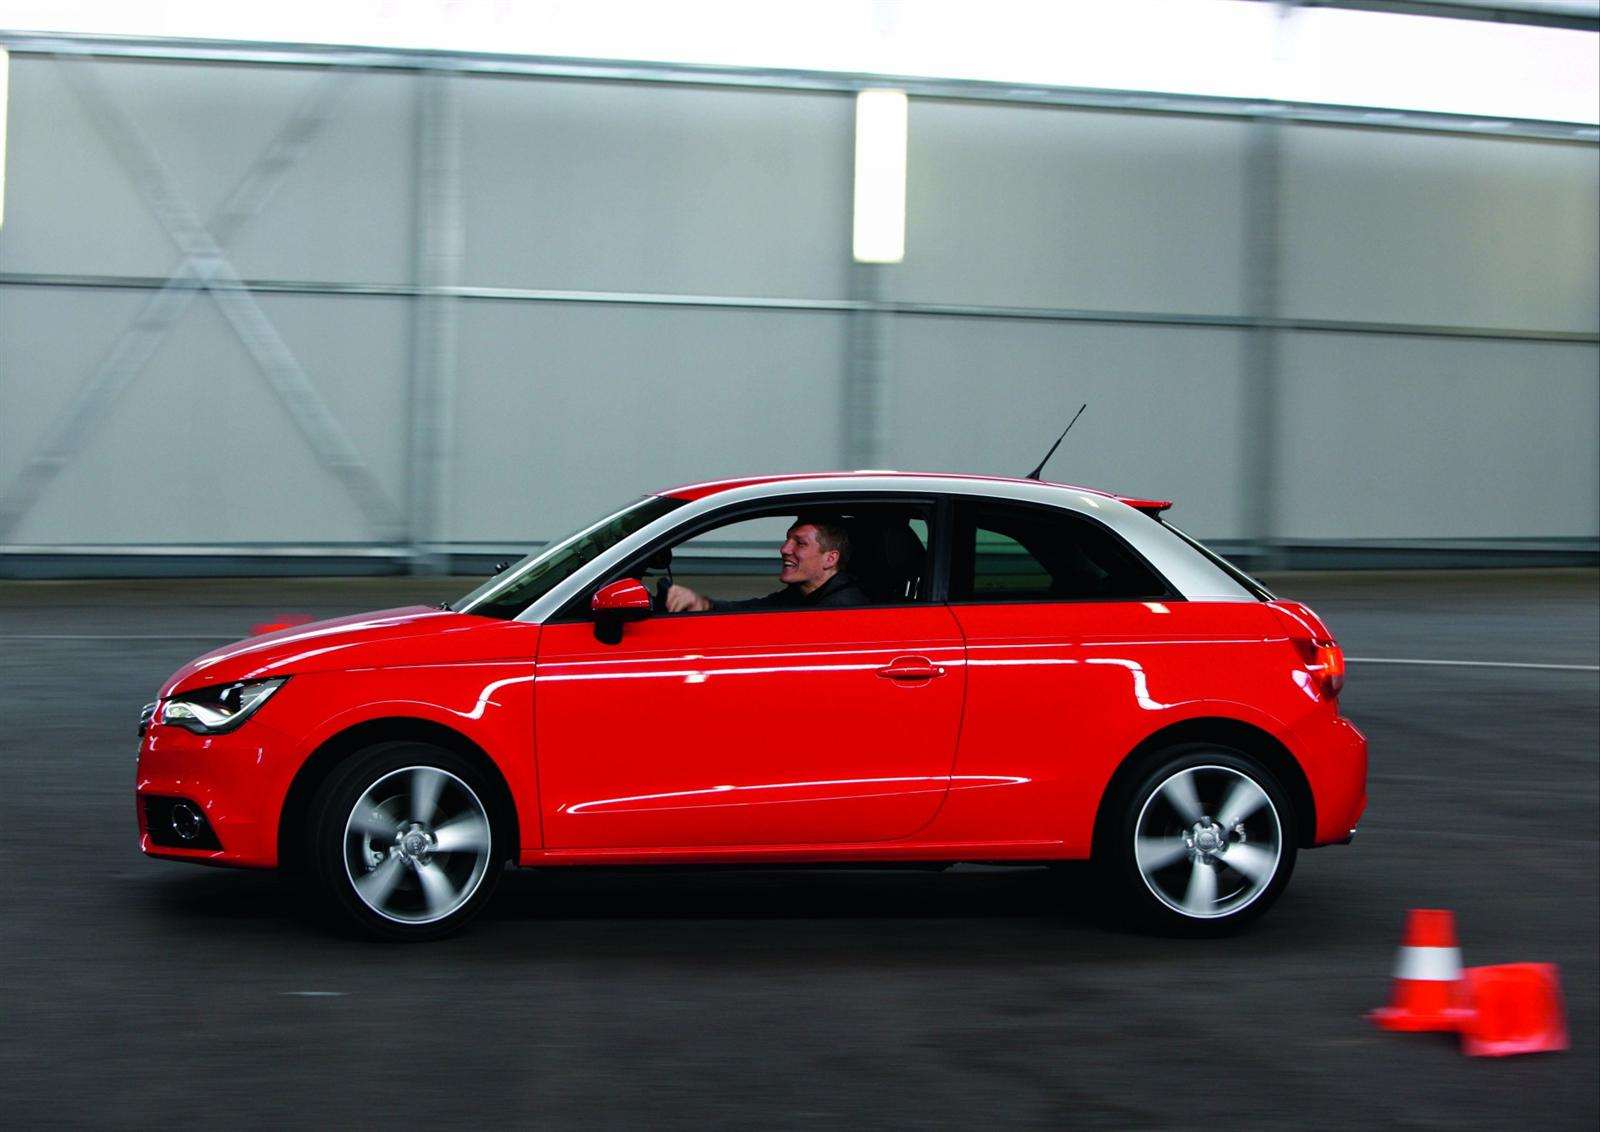 Le Meilleur Audi A1 Coupe Technical Details History Photos On Better Ce Mois Ci